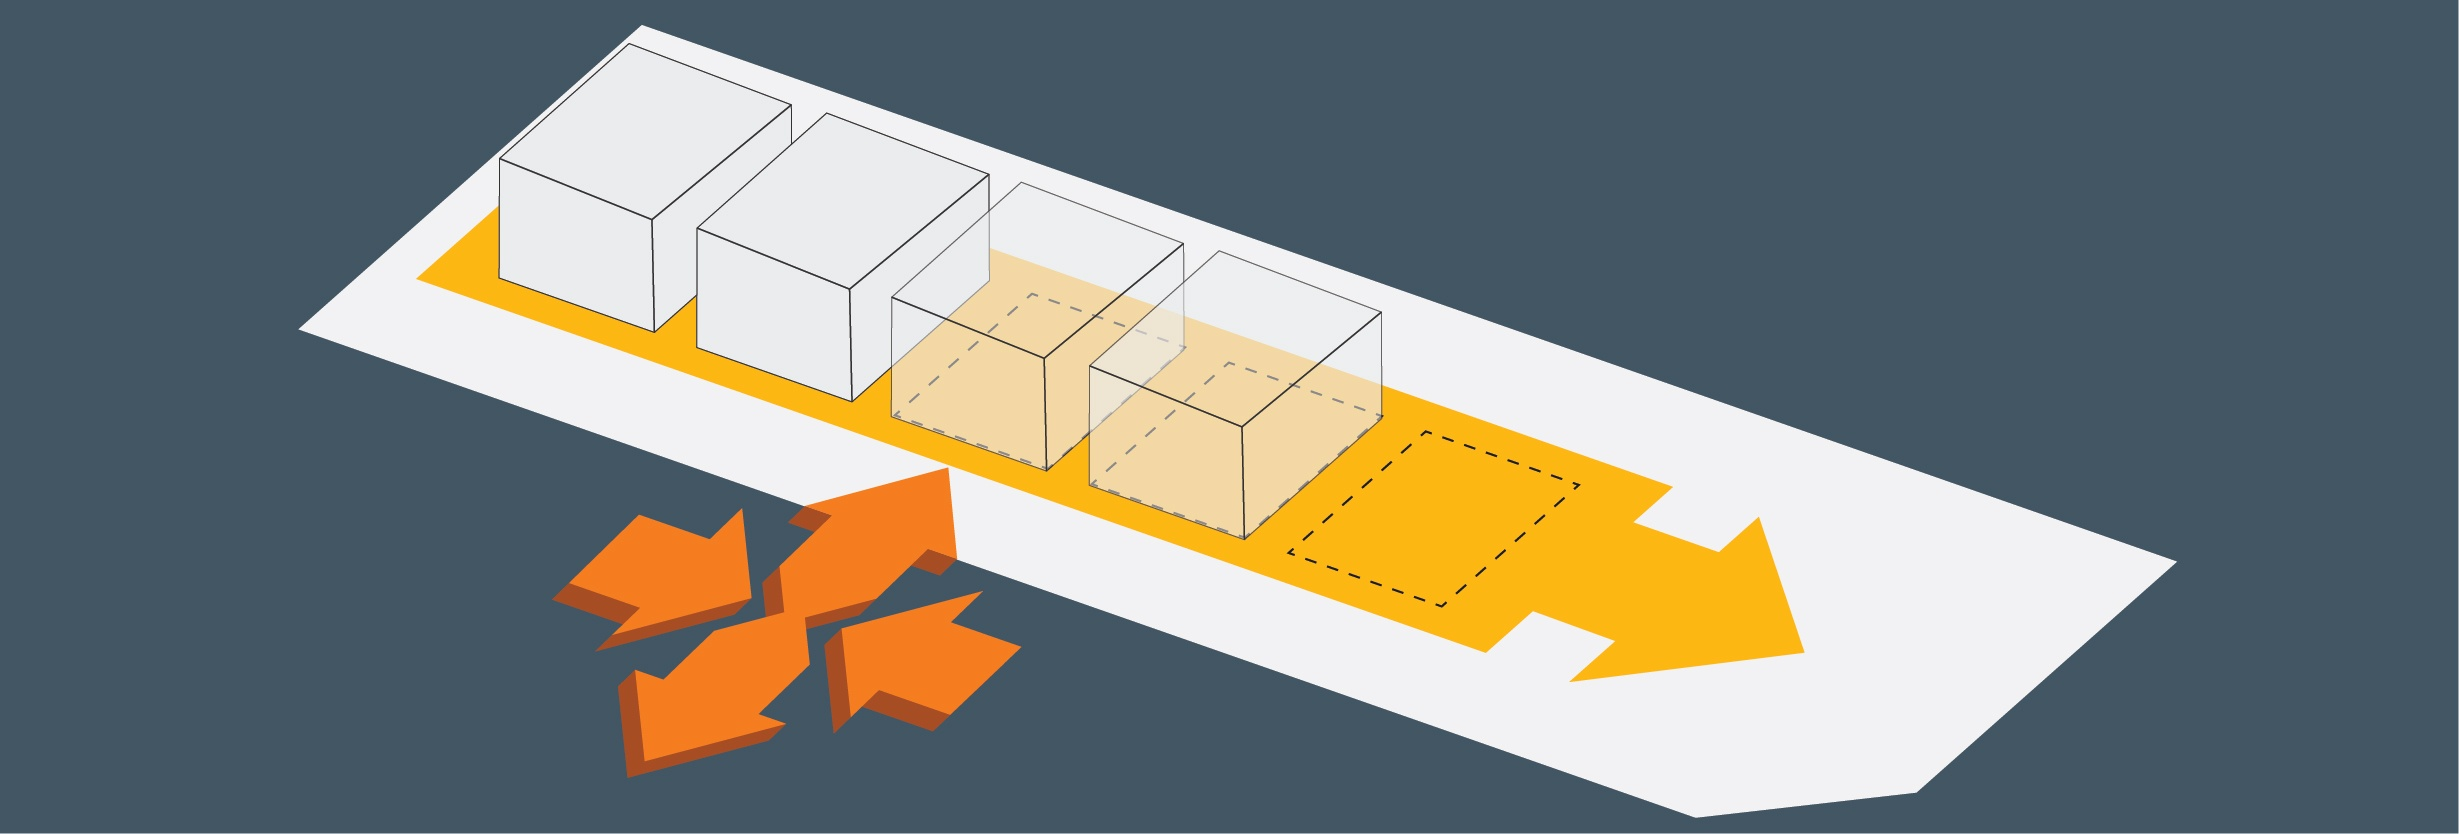 Monitoring AWS Auto Scaling: Here's How To Embrace Scale Without Losing Visibility